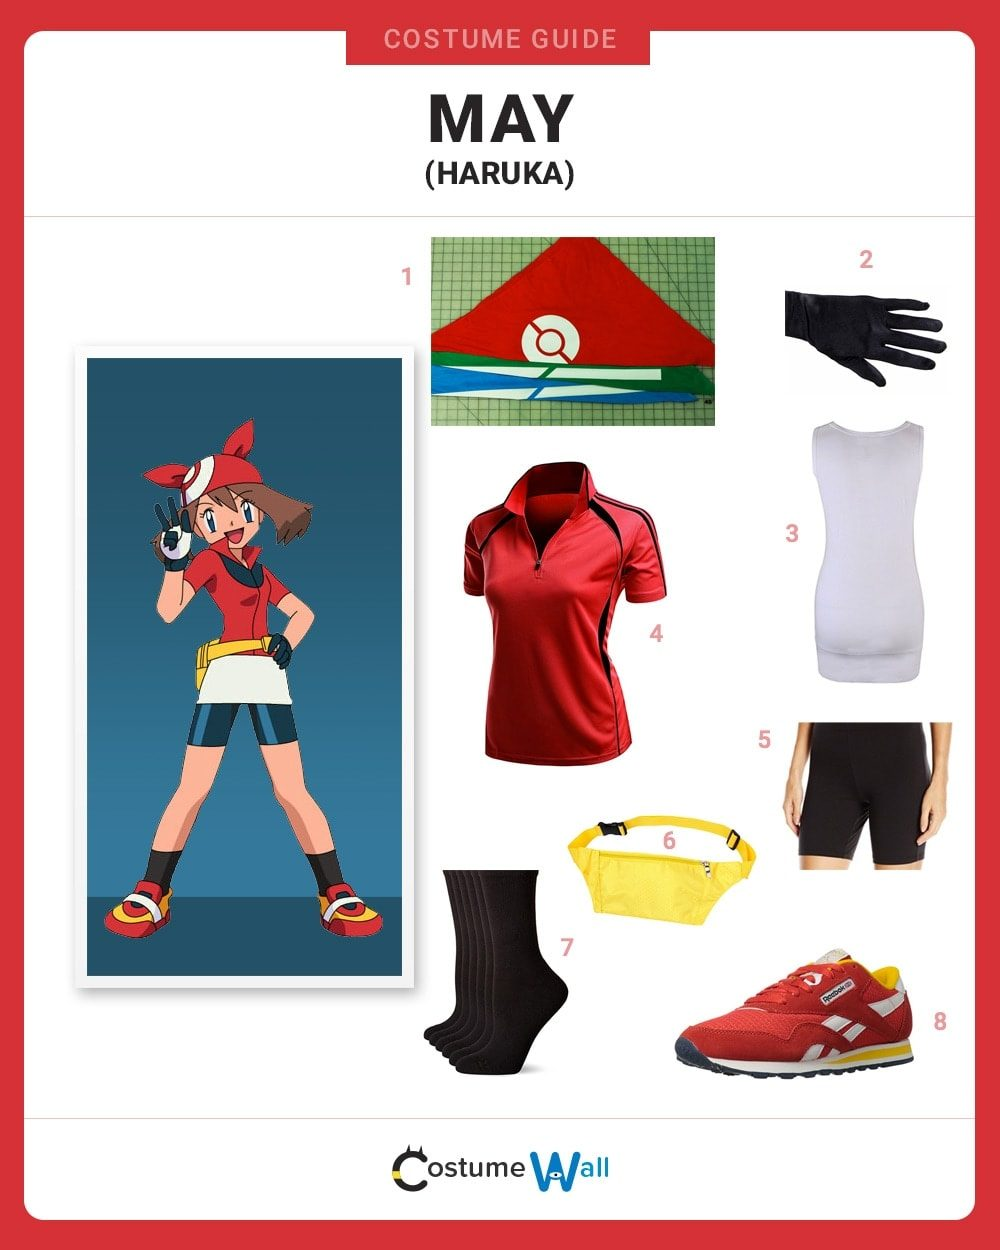 May (Haruka) Costume Guide